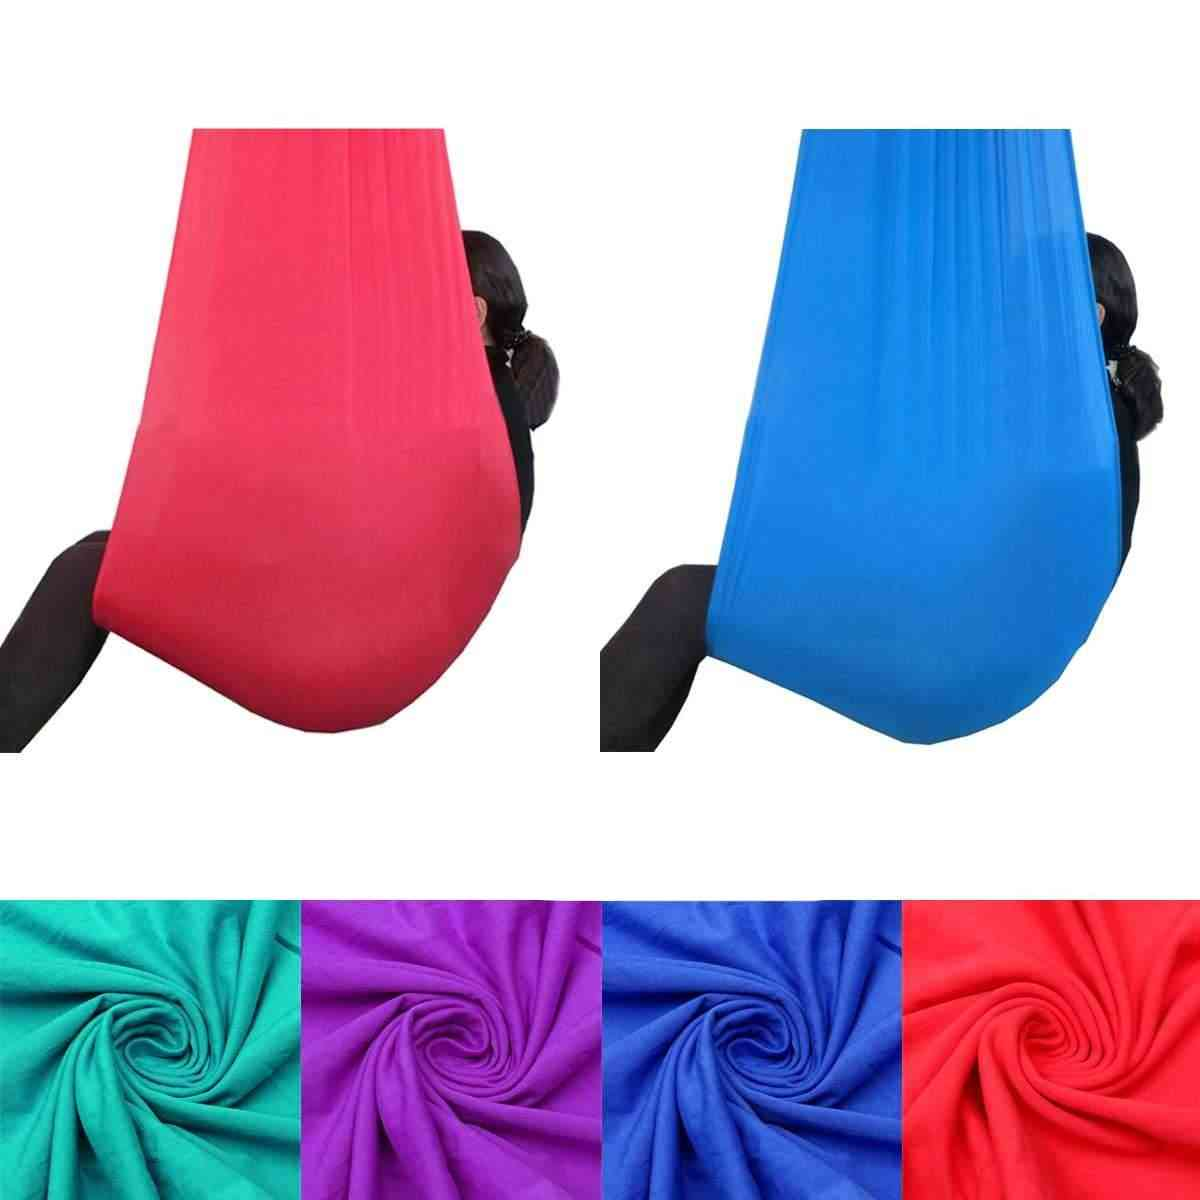 Cotton Swing Hammock For Autism Therapy, Cuddle Up, Sensory Child Parcel